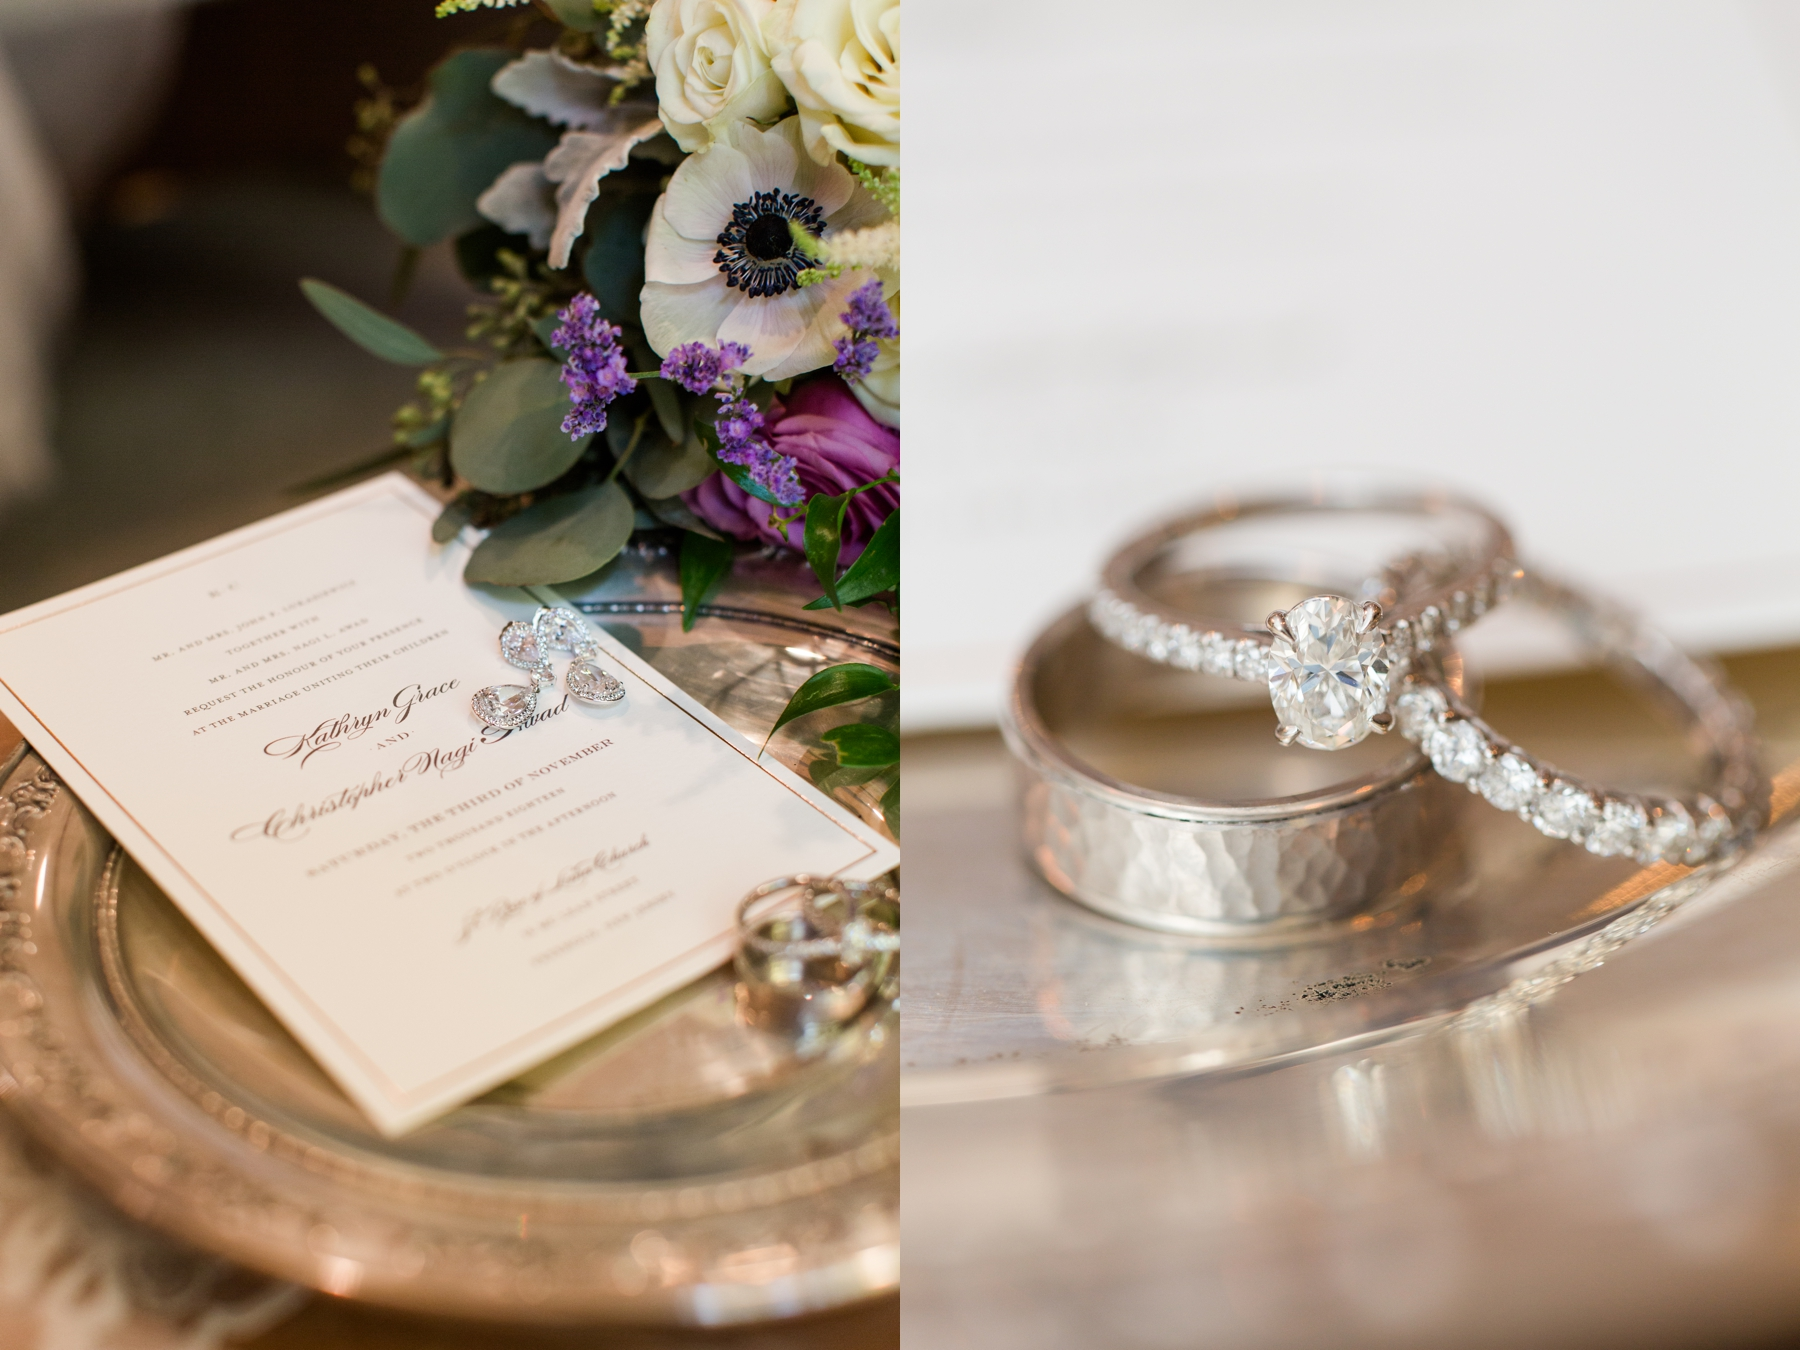 Wedding Card and The Ring